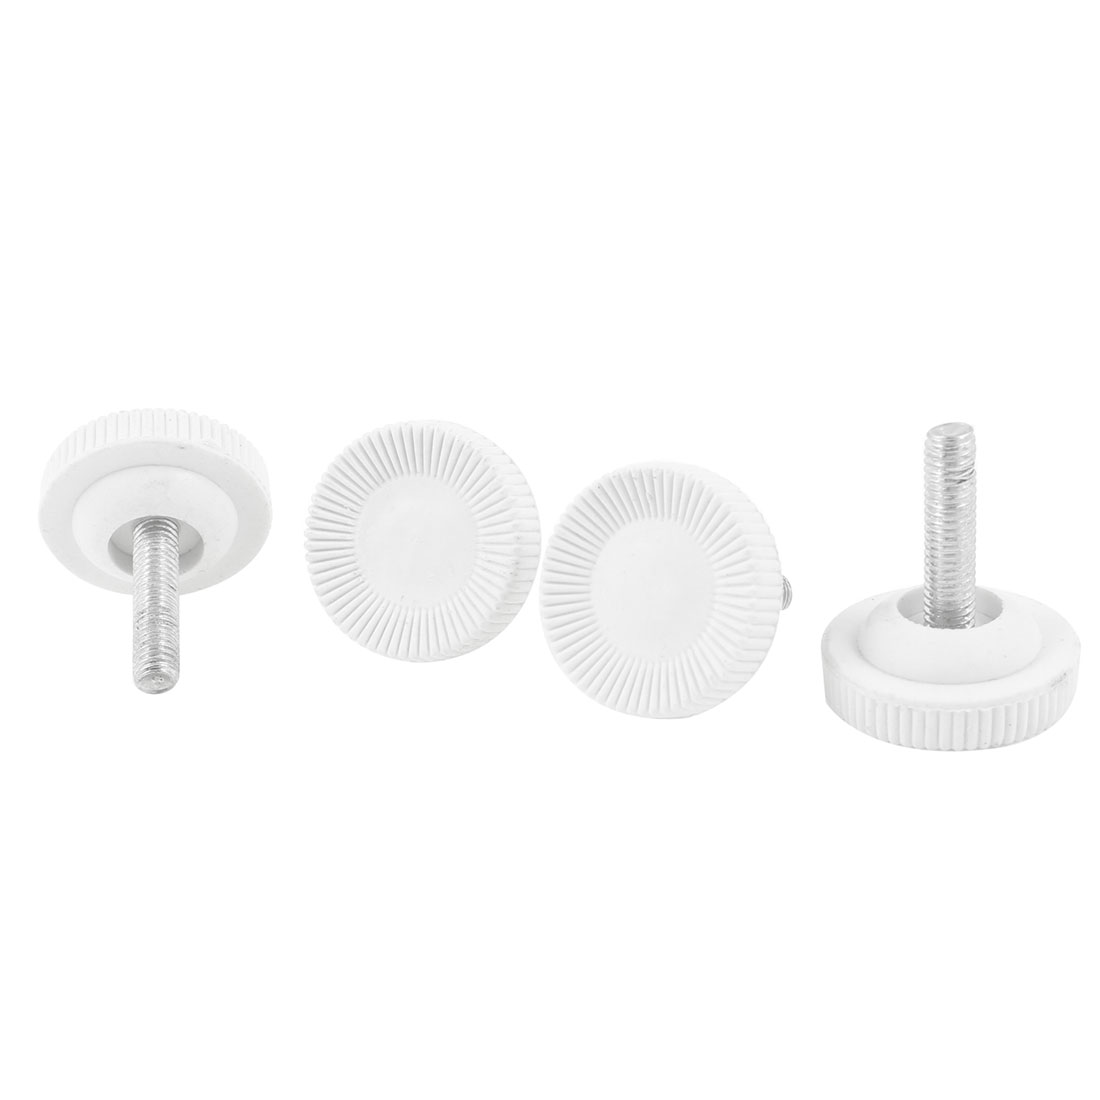 4 Pcs Screw On Type Furniture Glide Leveling Foot Adjuster 6mmx25mmx30mm